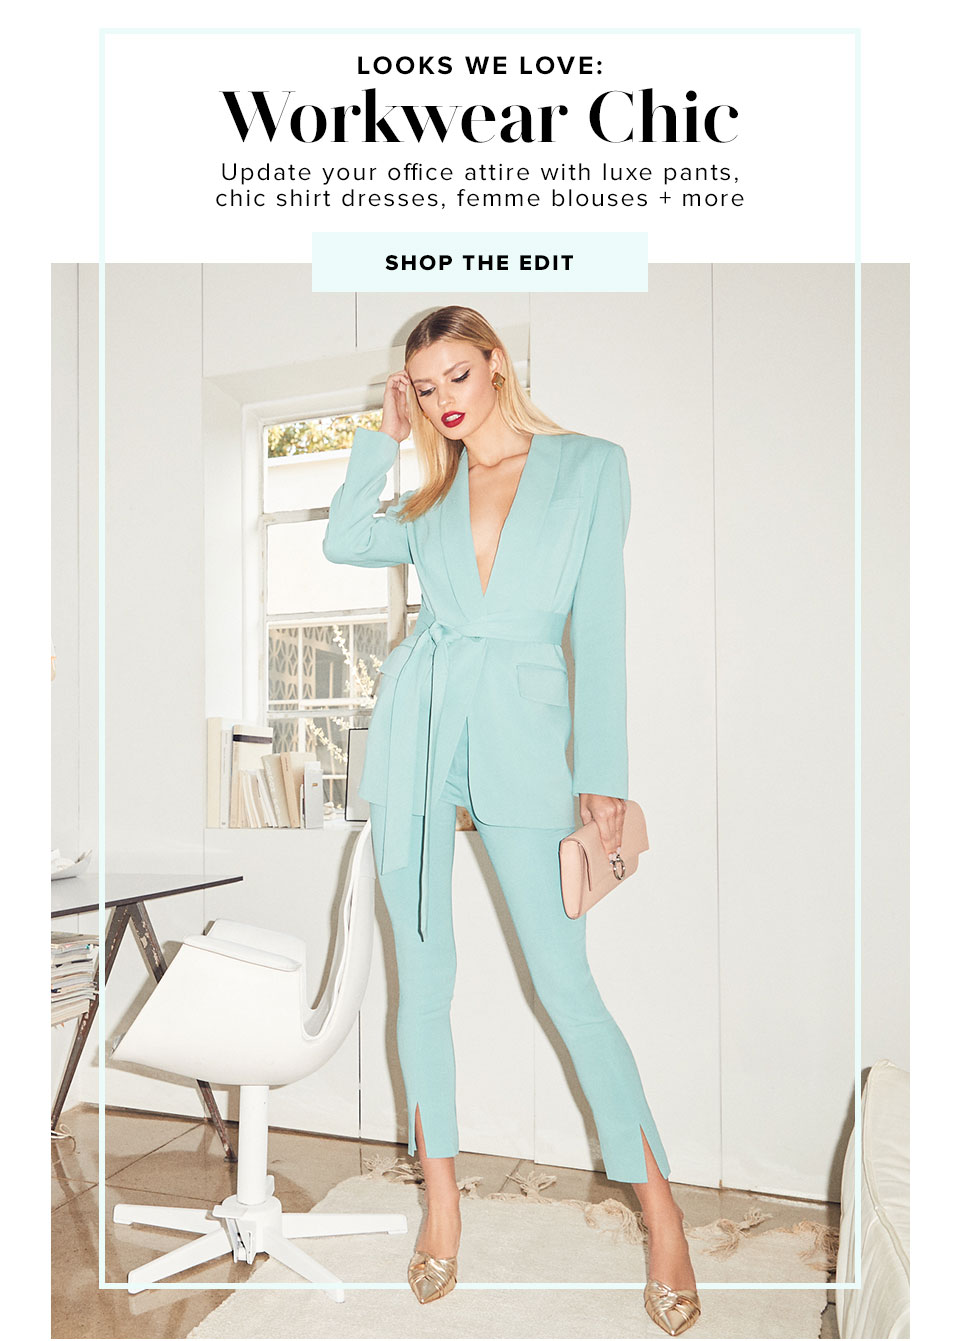 Looks We Love: Workwear Chic. Update your office attire with luxe pants, chic shirt dresses, femme blouses + more. Shop the edit.